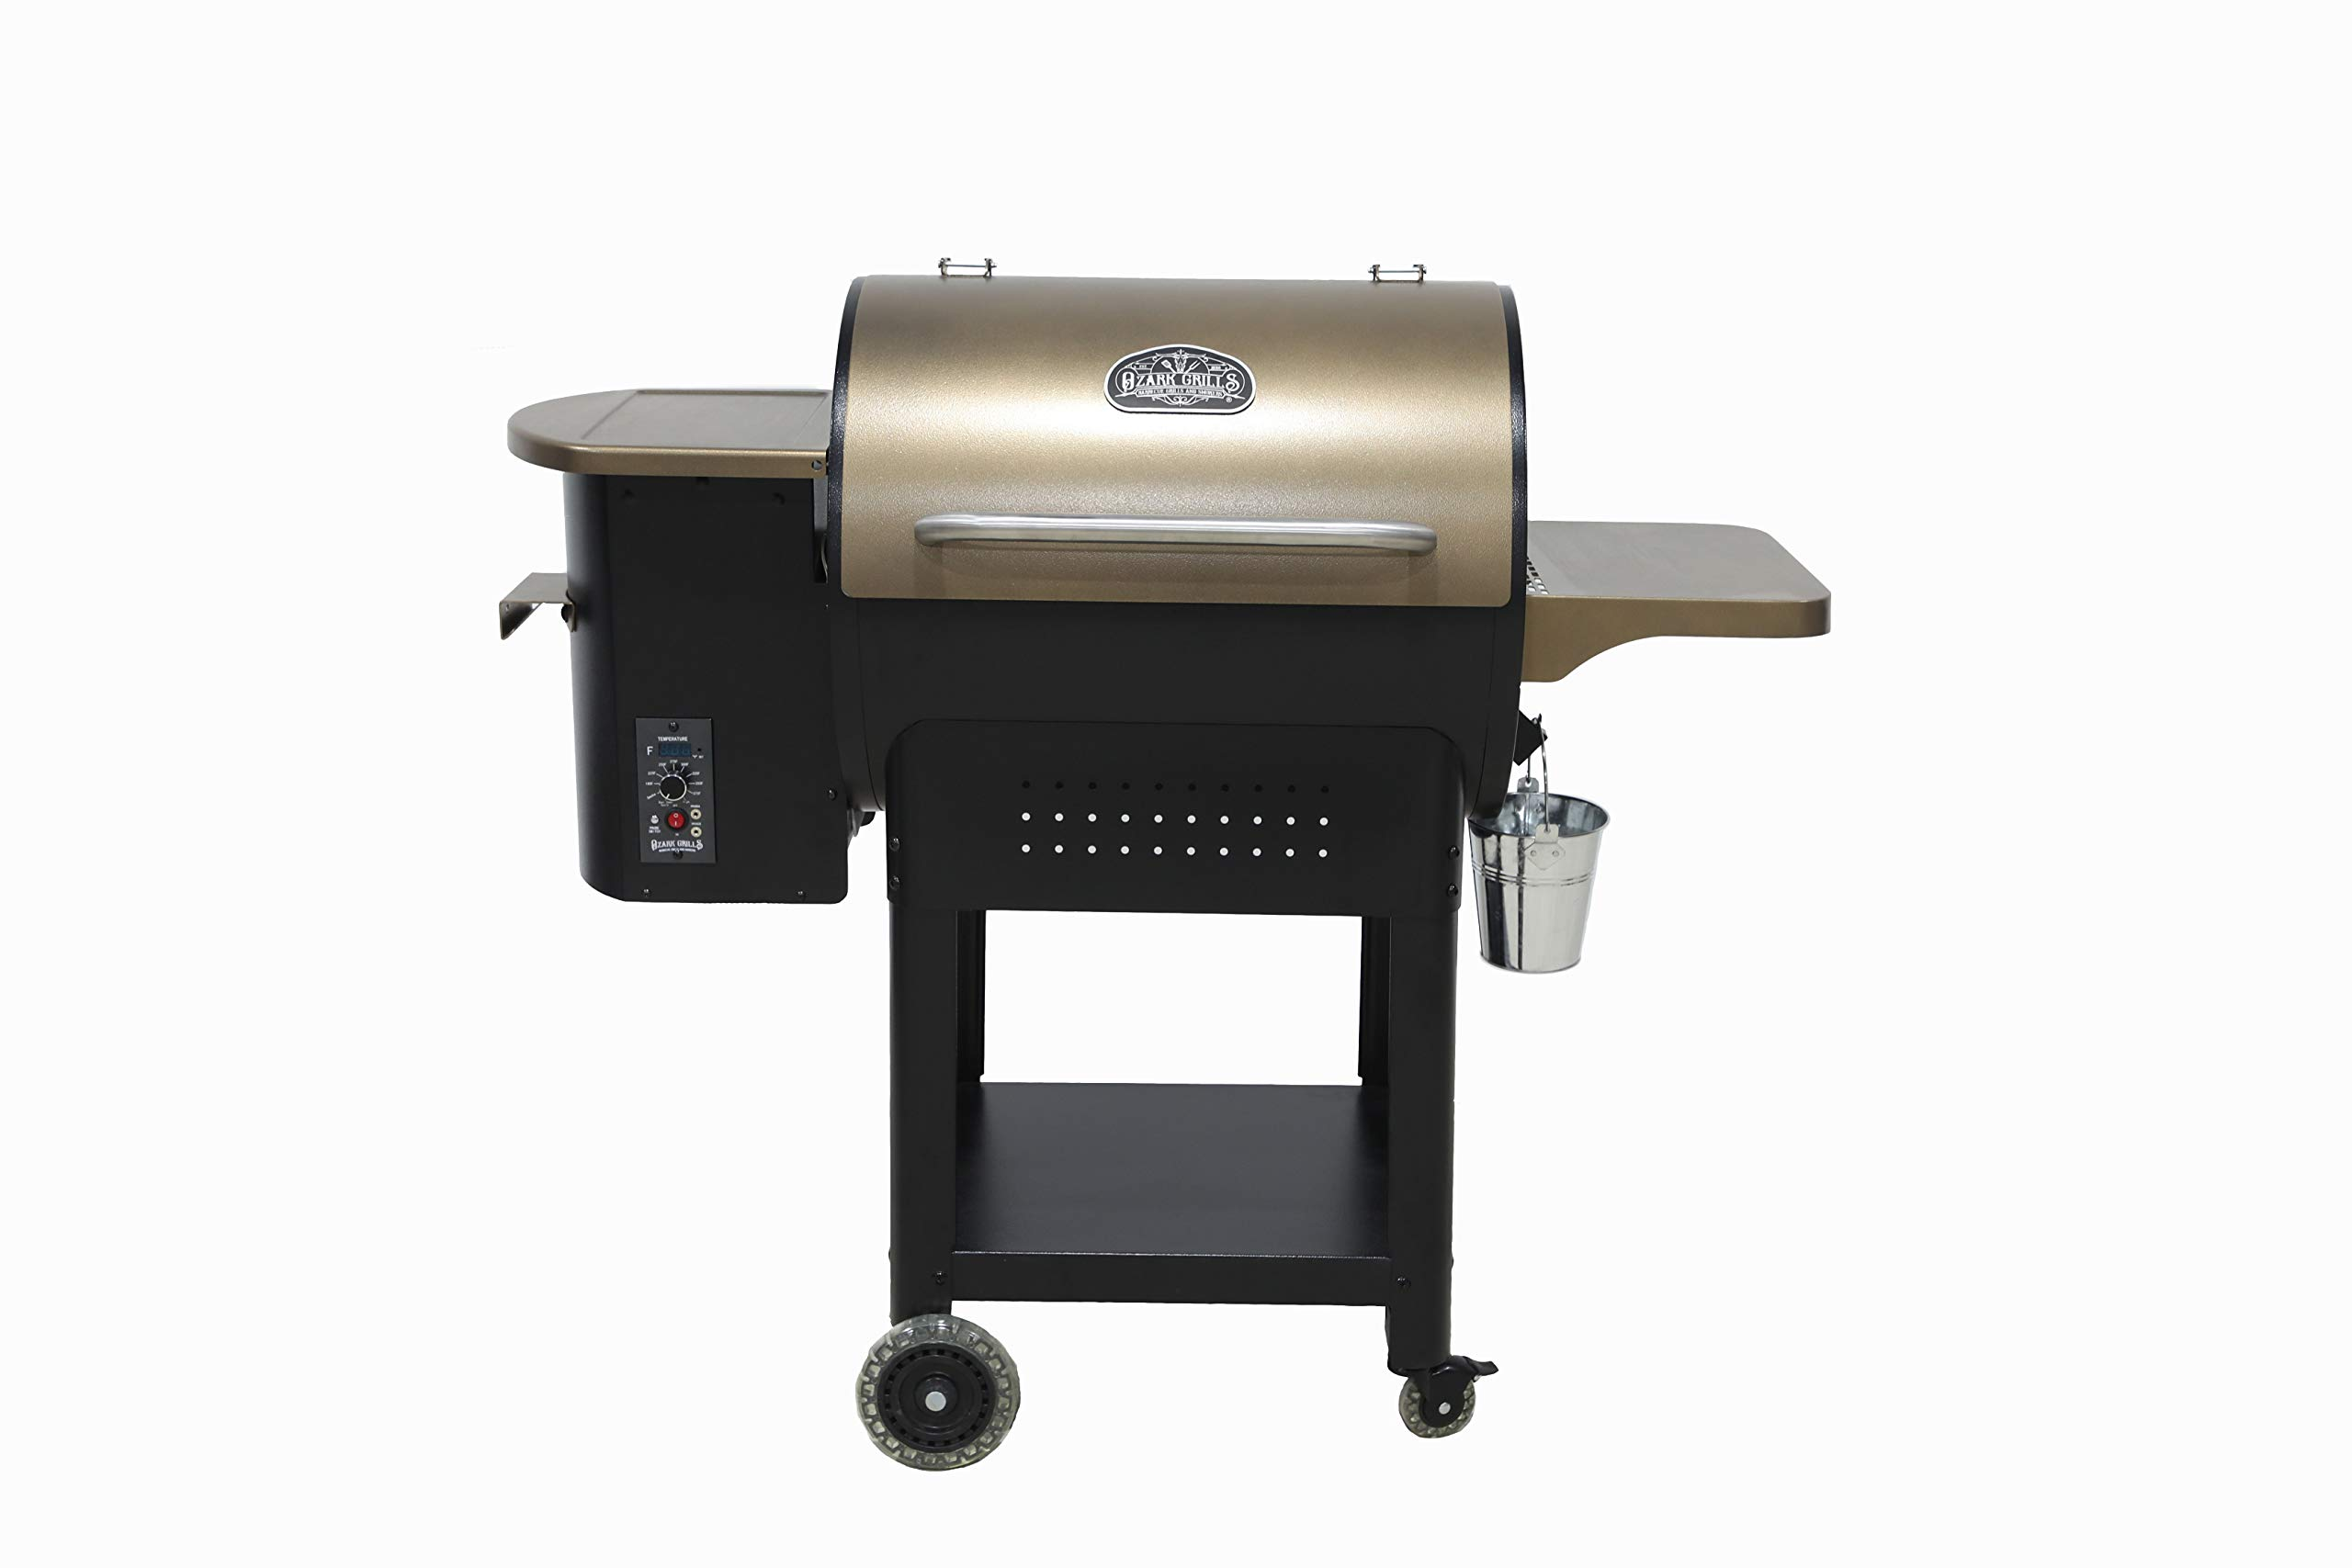 Ozark Grills - the Stag Wood Pellet Grill and Smoker with 2 Temperature Probes, 23 Pound Hopper, 480 Square Inch Cooking Area by Ozark Grills